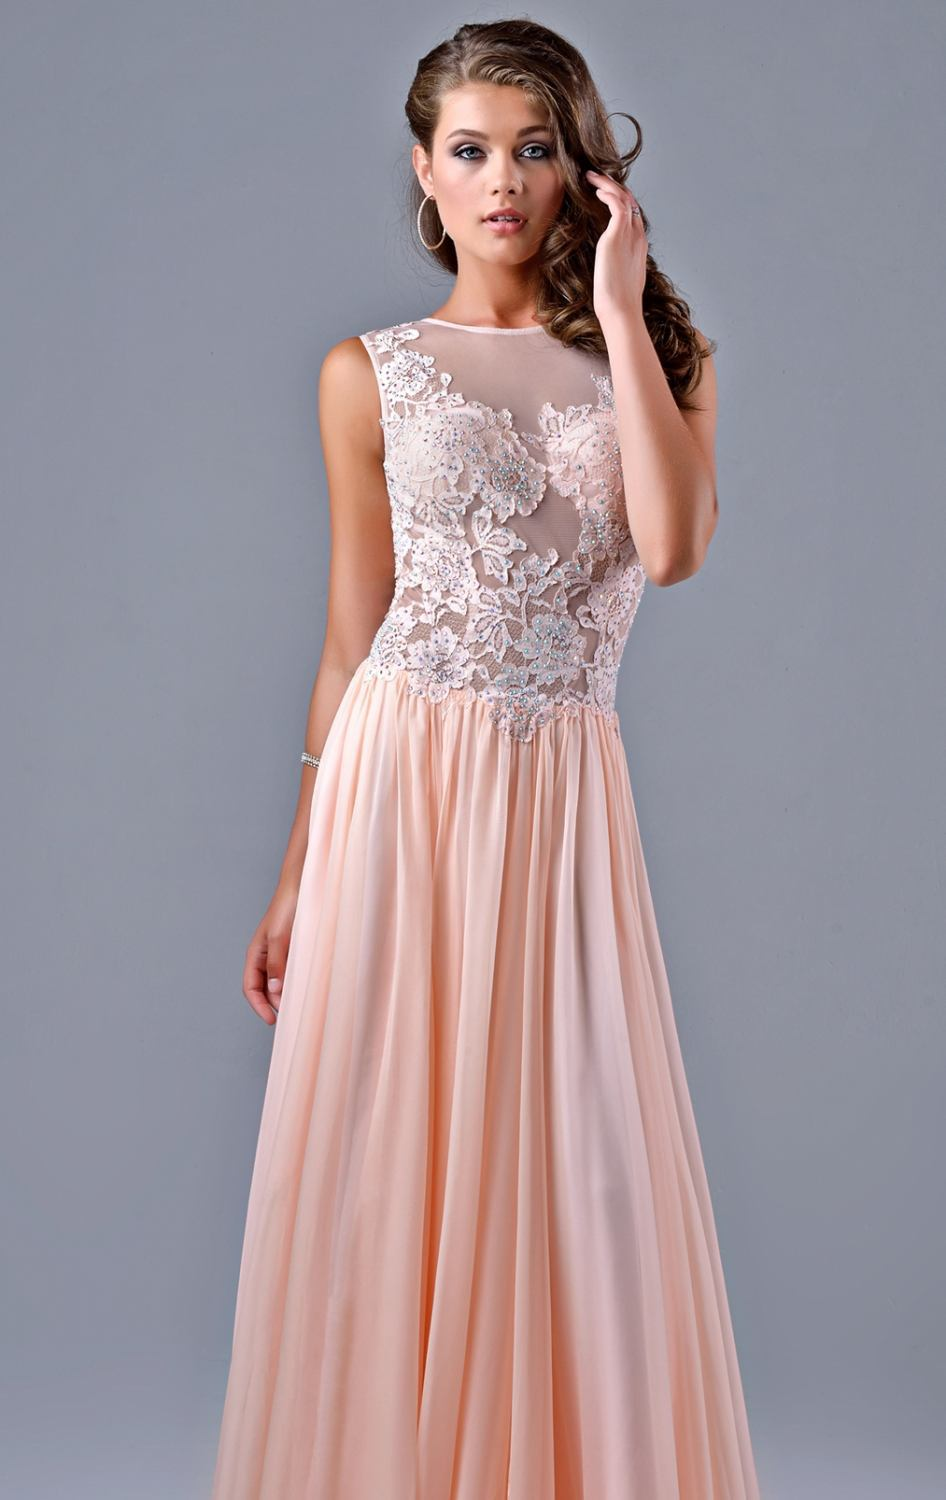 b6367032cea2 Free Shipping 2015 New Arrival Soft Pink Chiffon Prom Dress Low V Back Long  Prom Dresses Beaded Lace See Through Bodice-in Prom Dresses from Weddings  ...